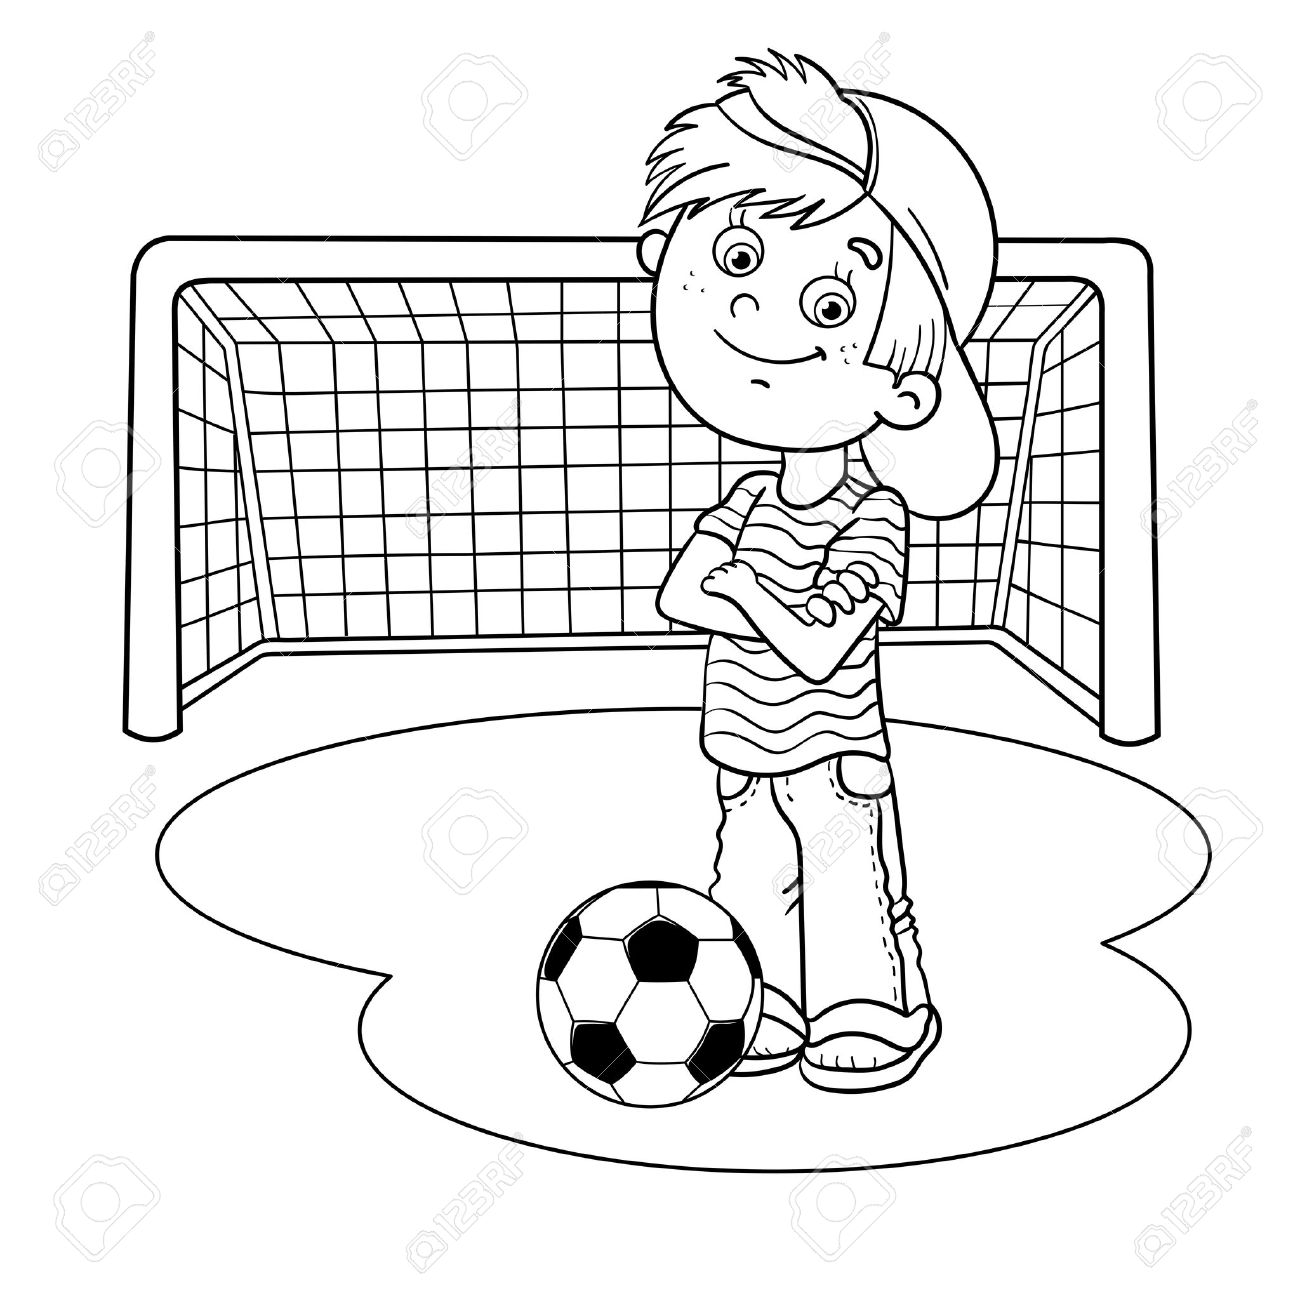 Football Outline Drawing at GetDrawings.com | Free for personal use ...